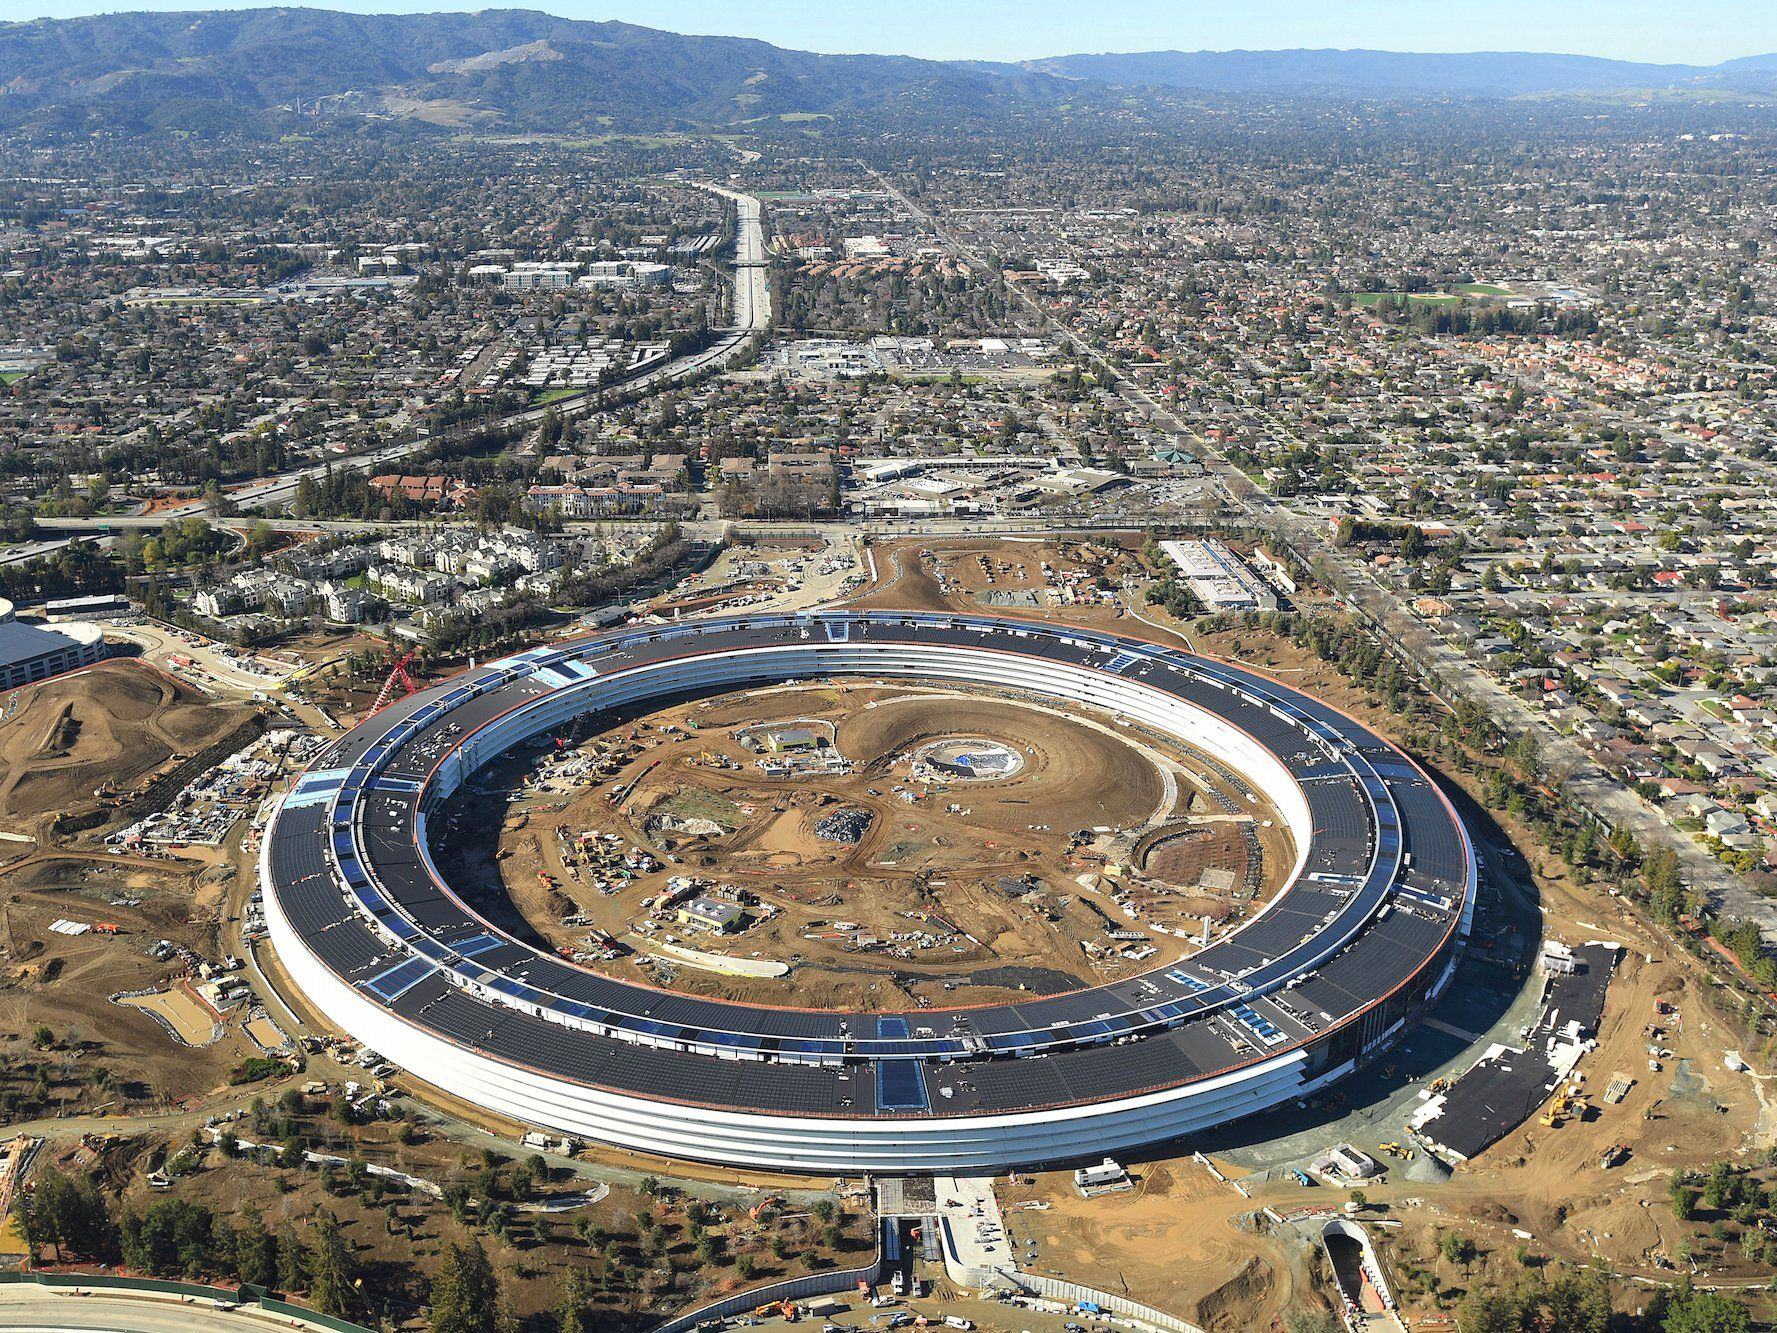 Cupertino Calif forever Apple s hometown to pitch plans for a gigantic new headquarters building that looked like a UFO planted in a serene for…